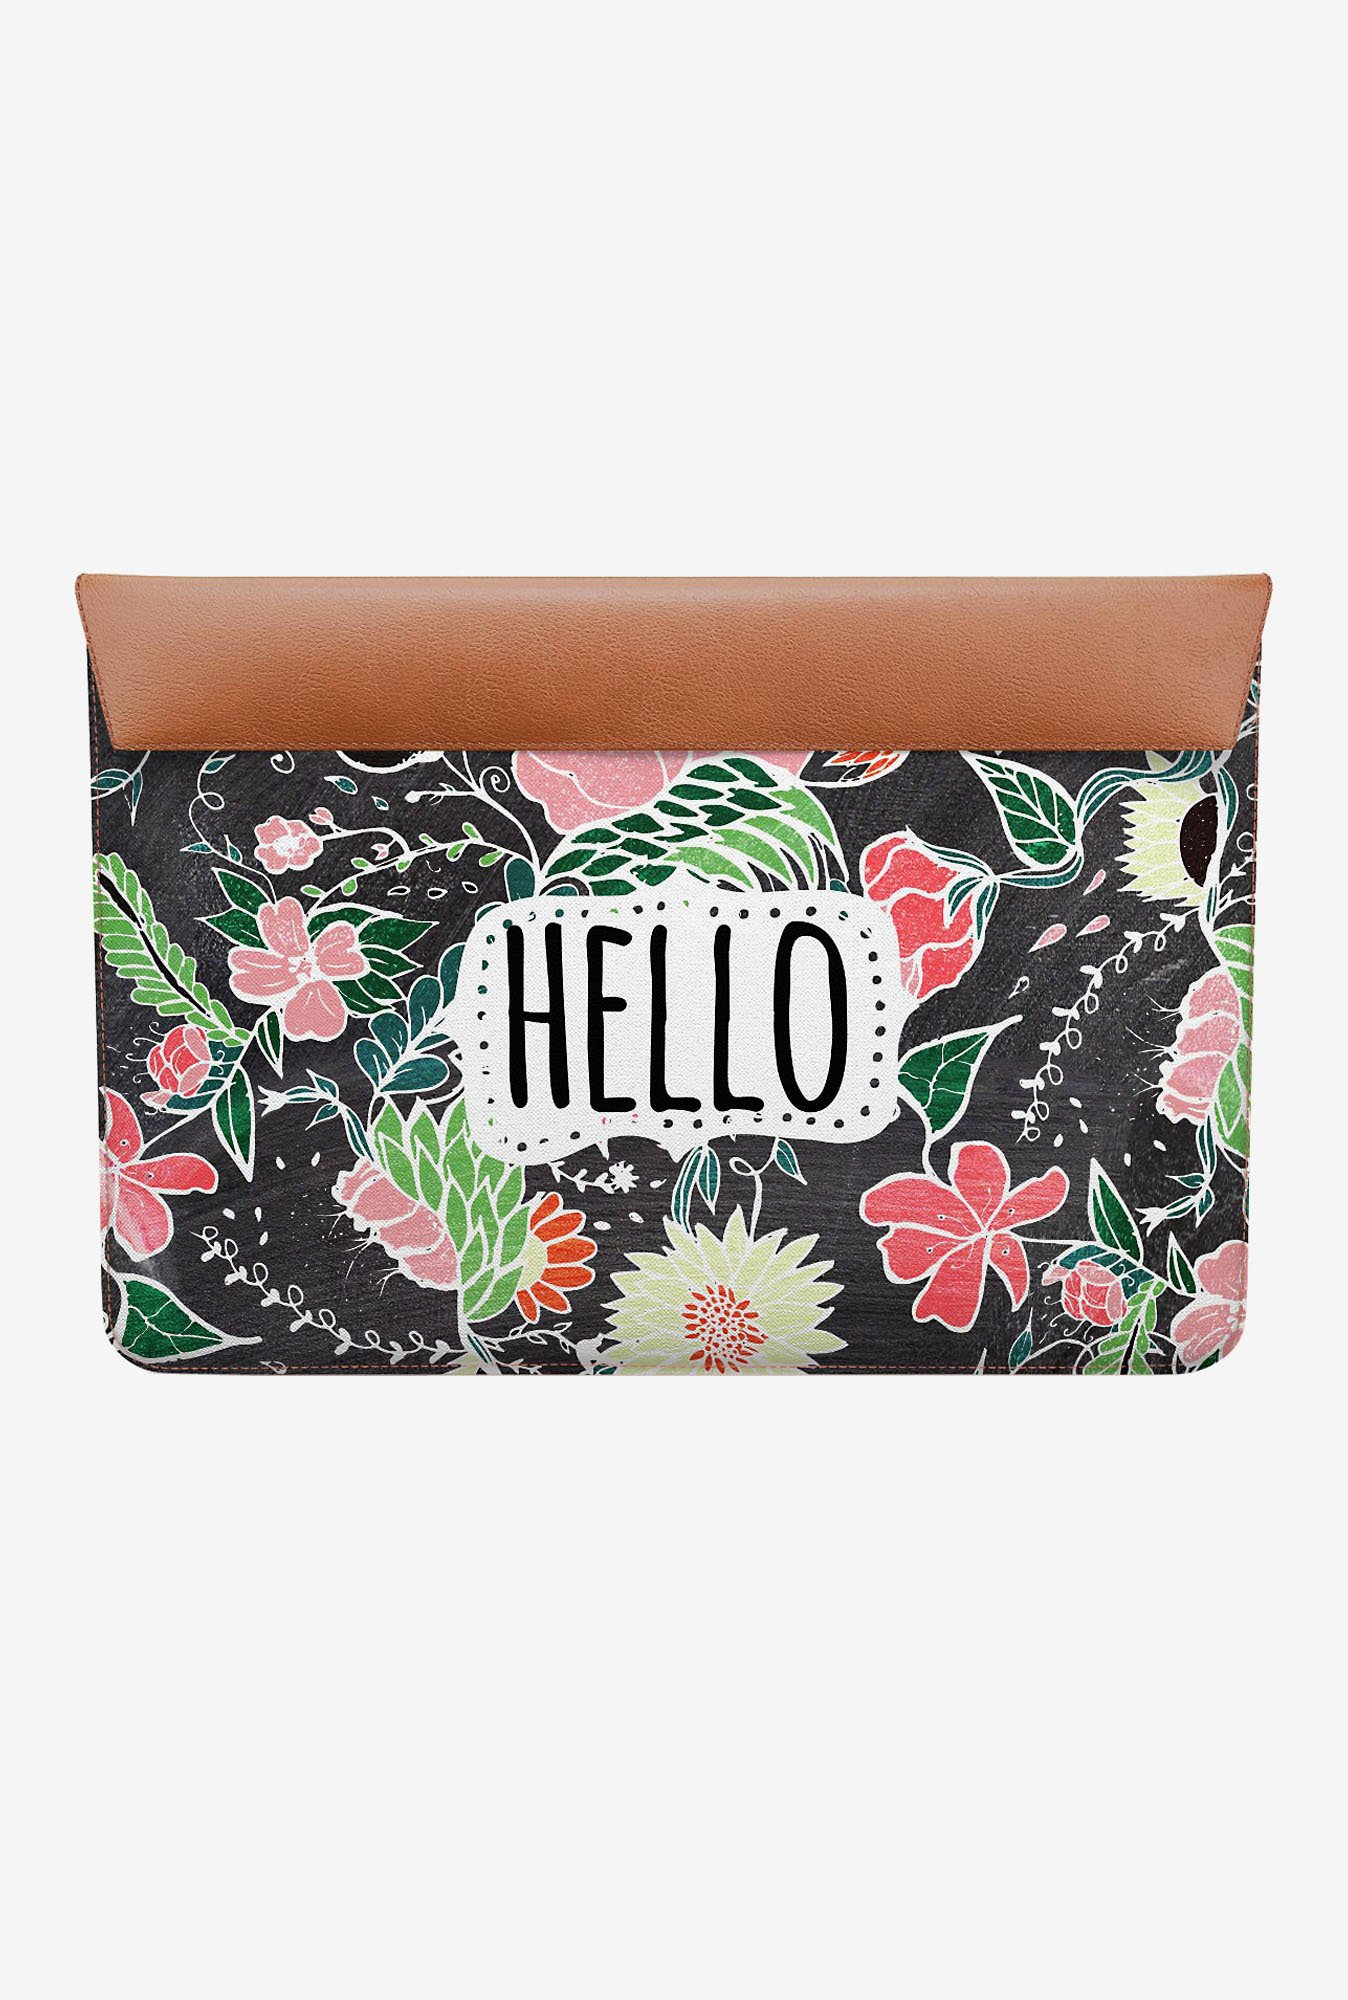 DailyObjects Flowers Hello MacBook Air 11 Envelope Sleeve